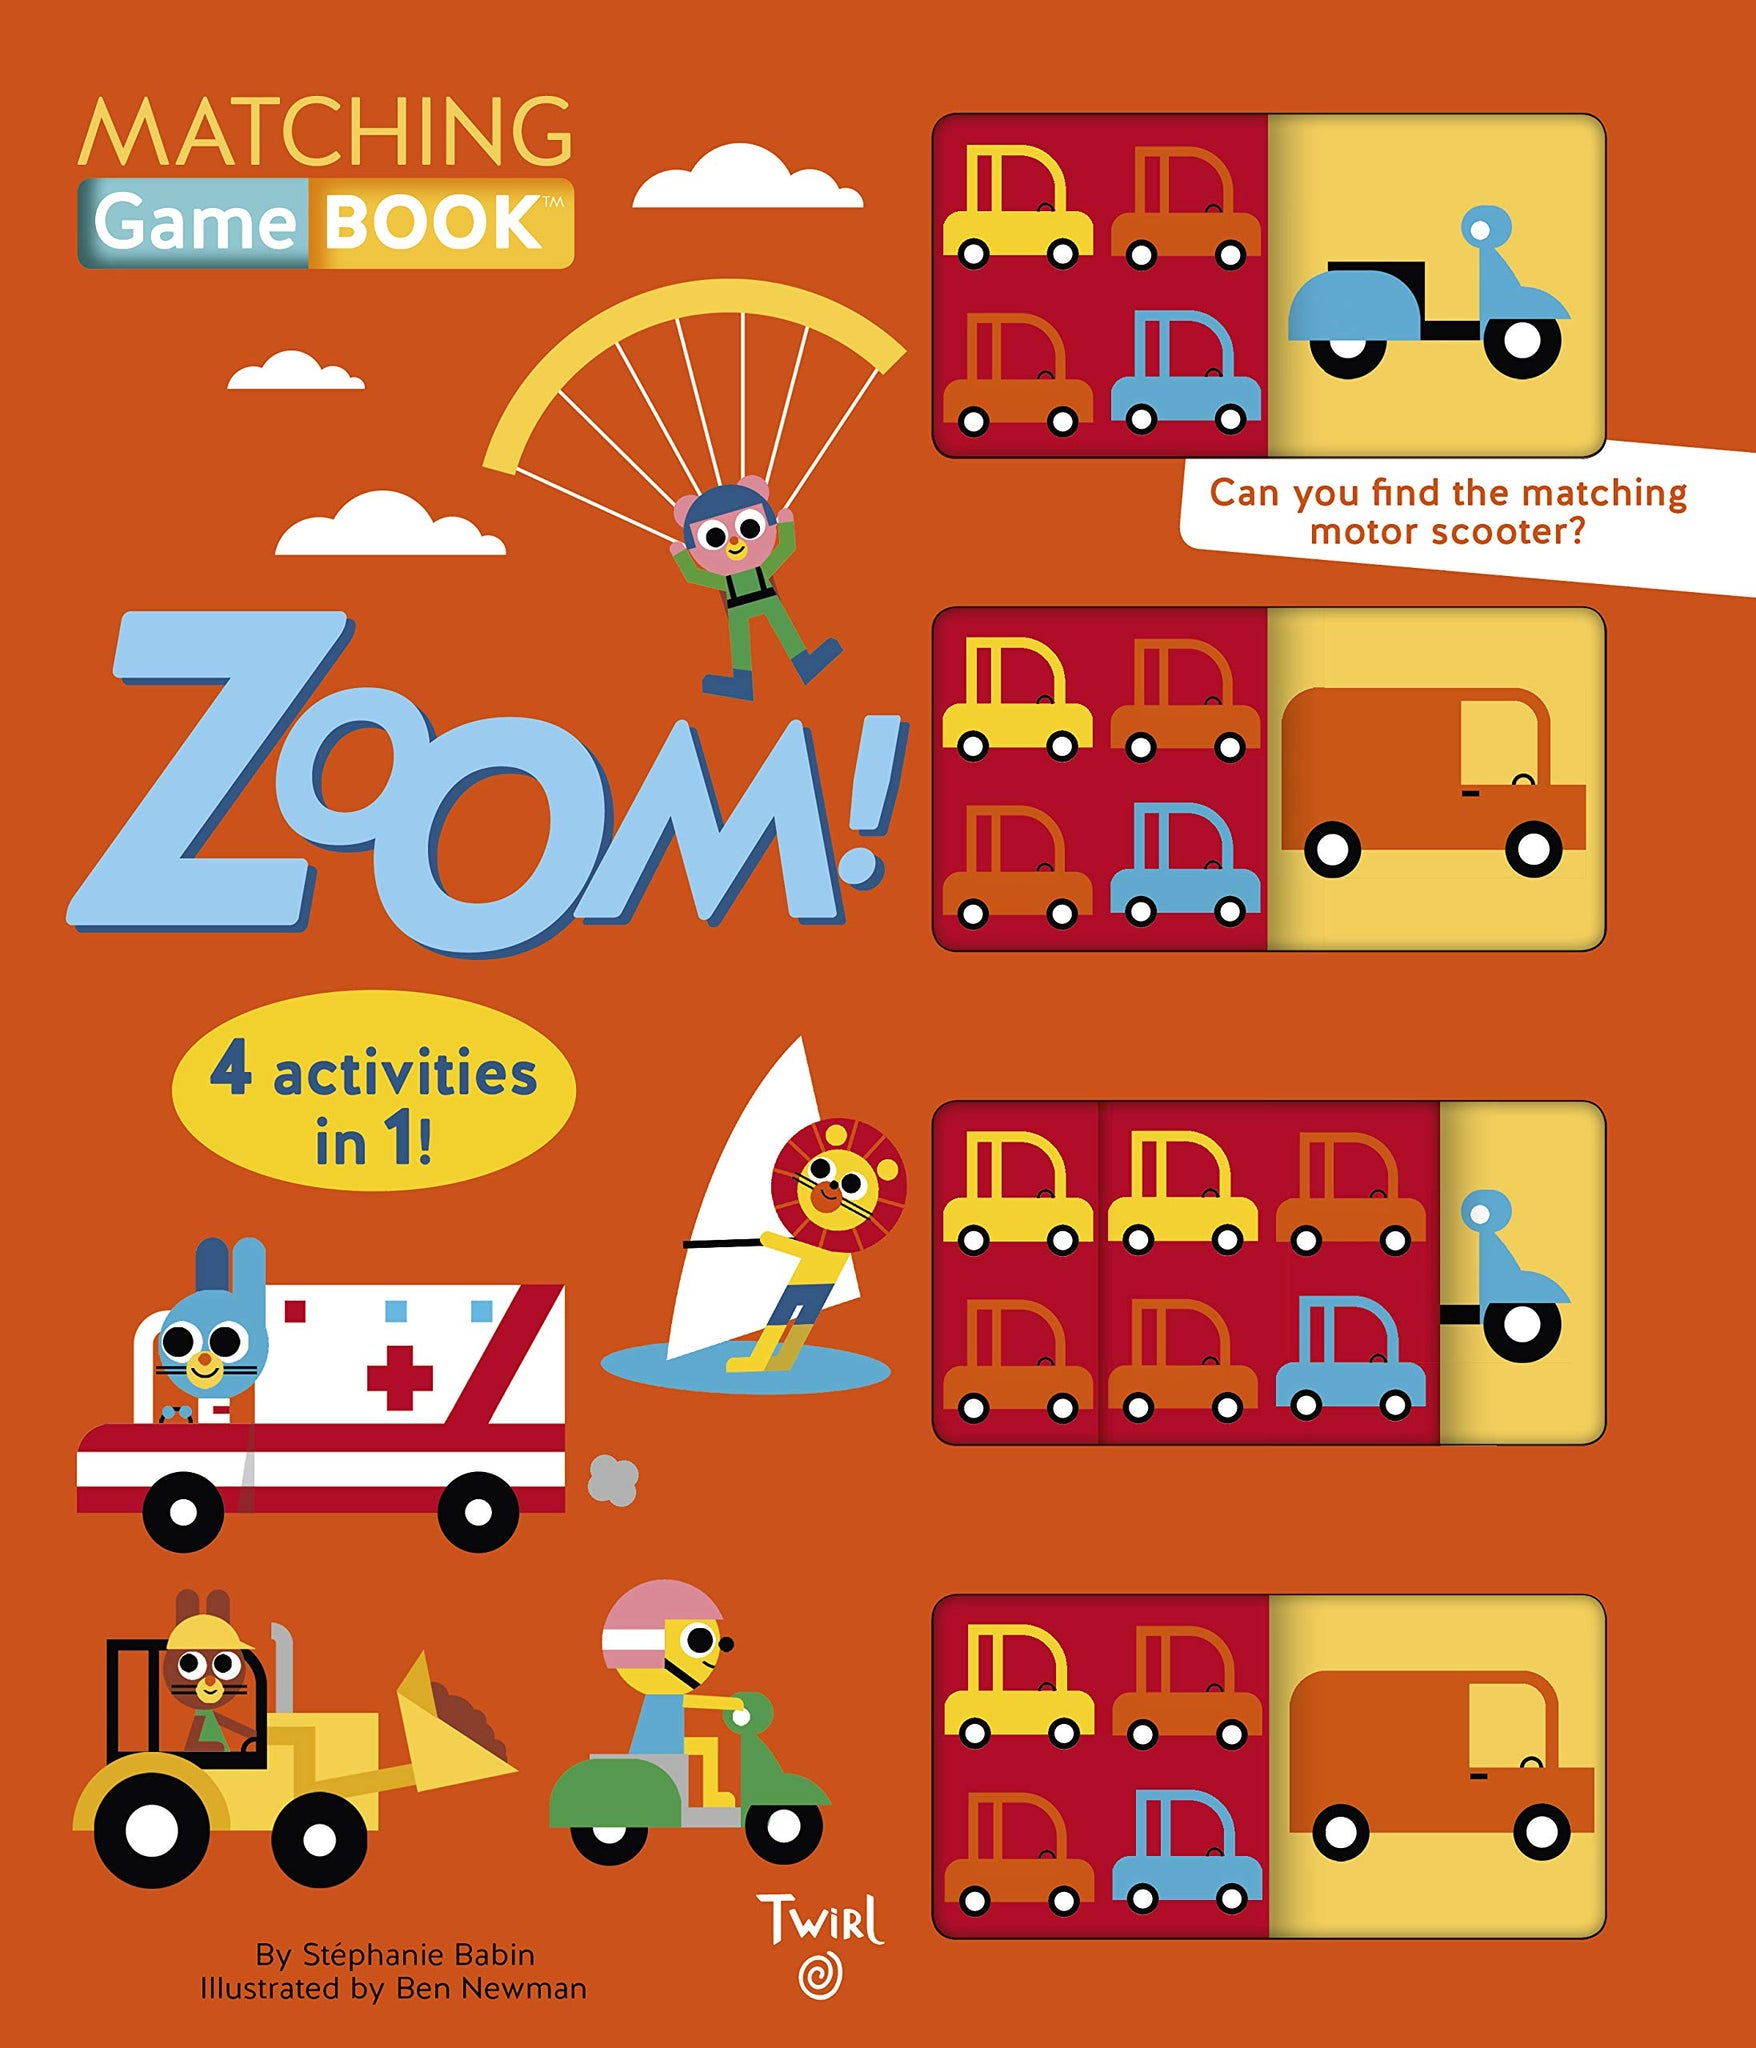 Zoom! Matching Game Book: 4 Activities in 1!